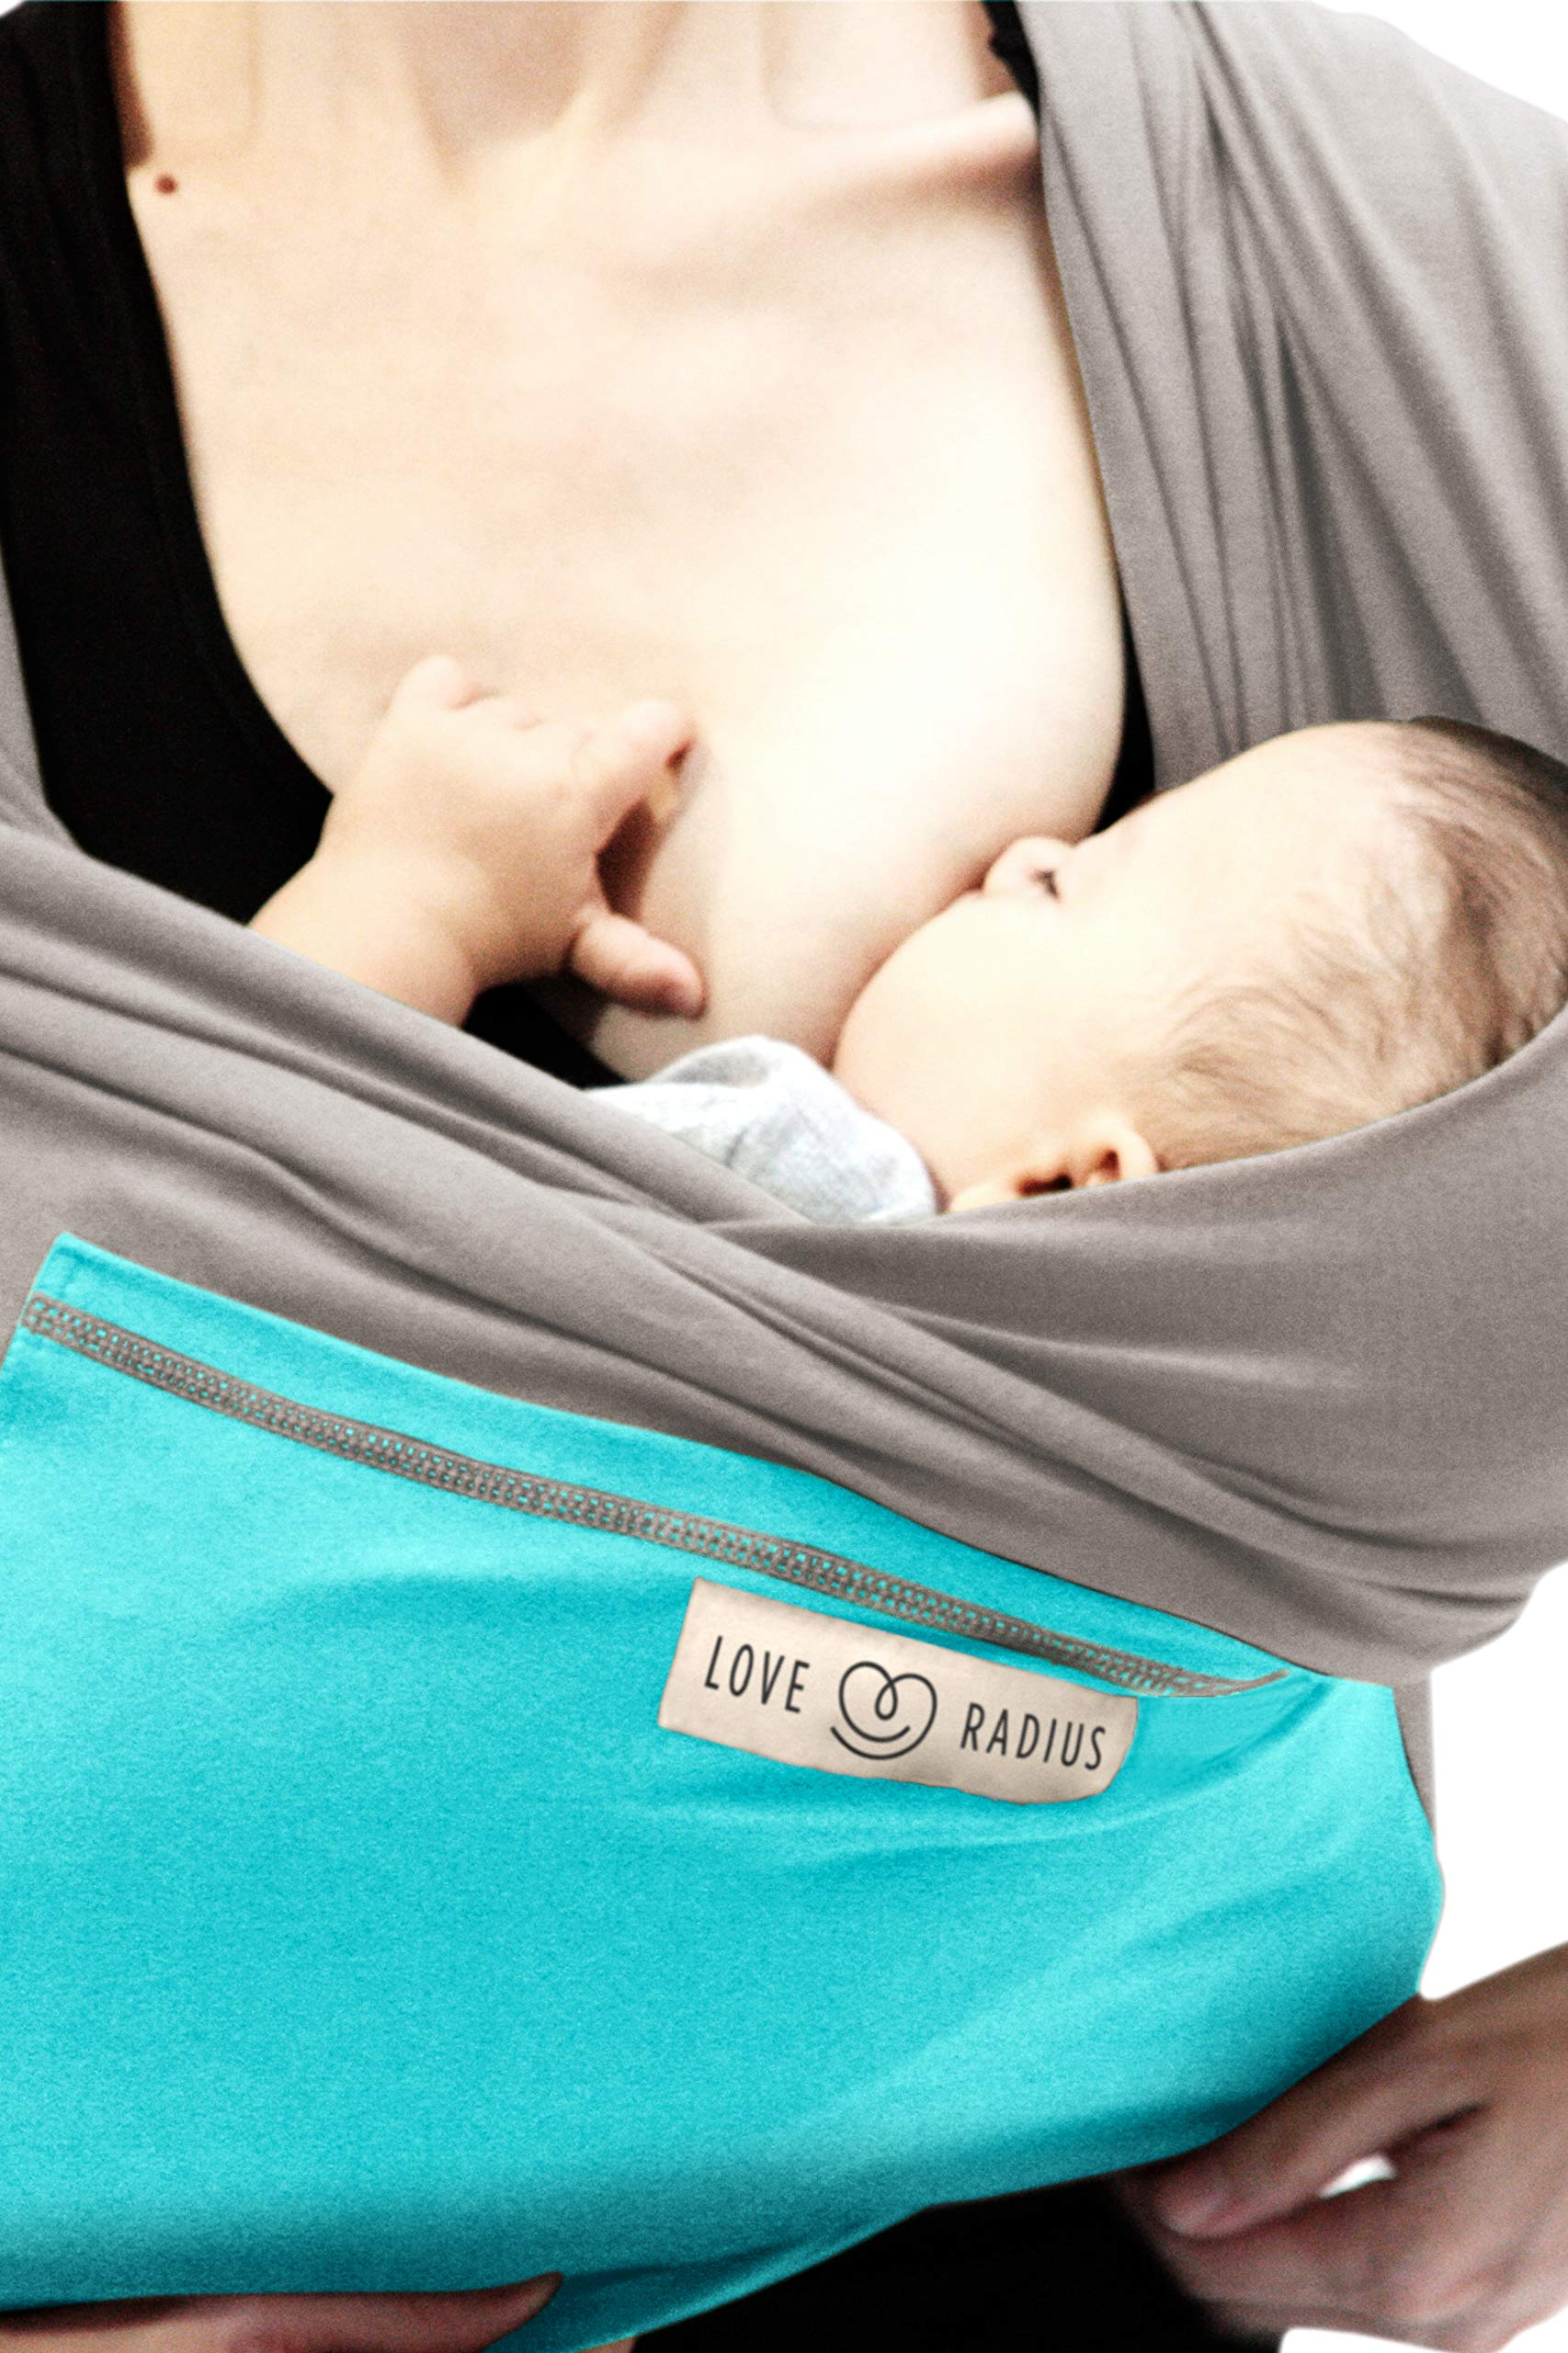 Je Porte Mon Bébé L'Originale Baby Sling Je Porte Mon Bébé High Quality Elastic Baby Carrier Dense, elastic and breathable material Great support, fits your baby's body like a second skin. 30